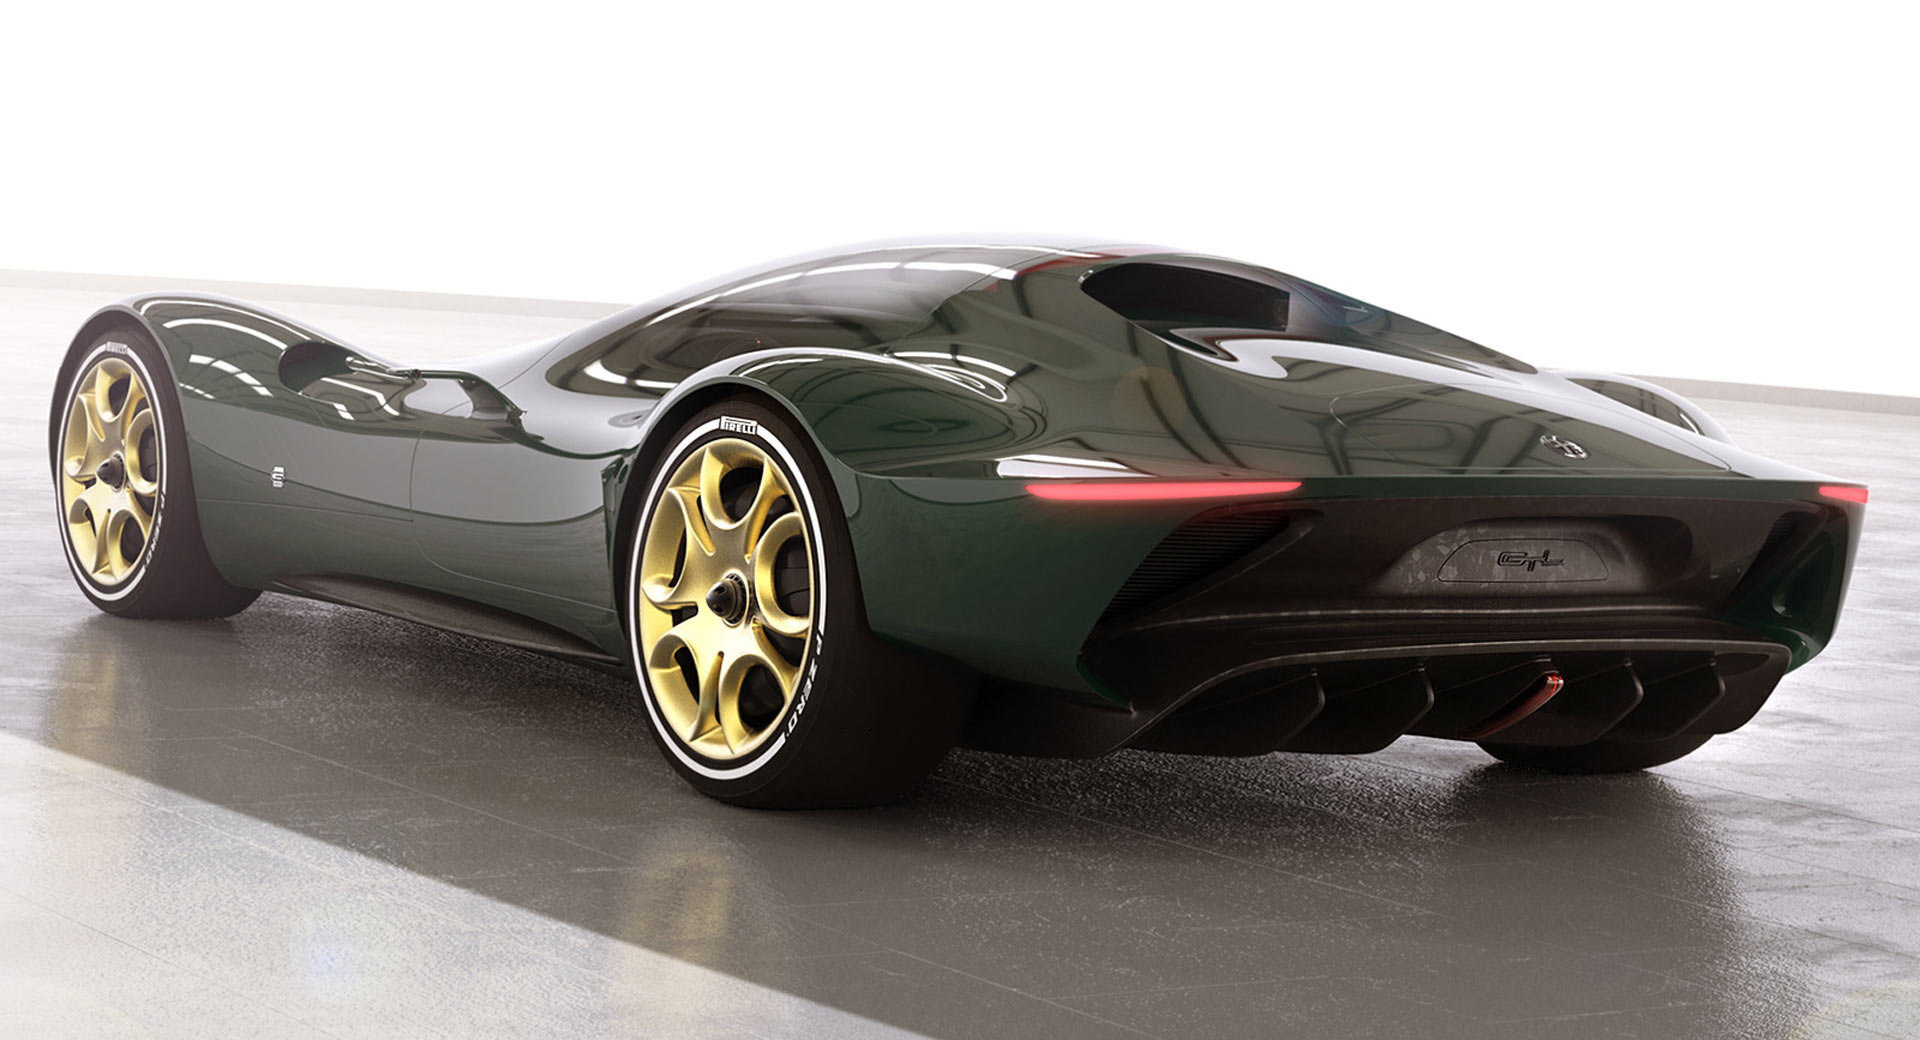 Here Are The 17 Hottest, Craziest Cars We Saw At CES In